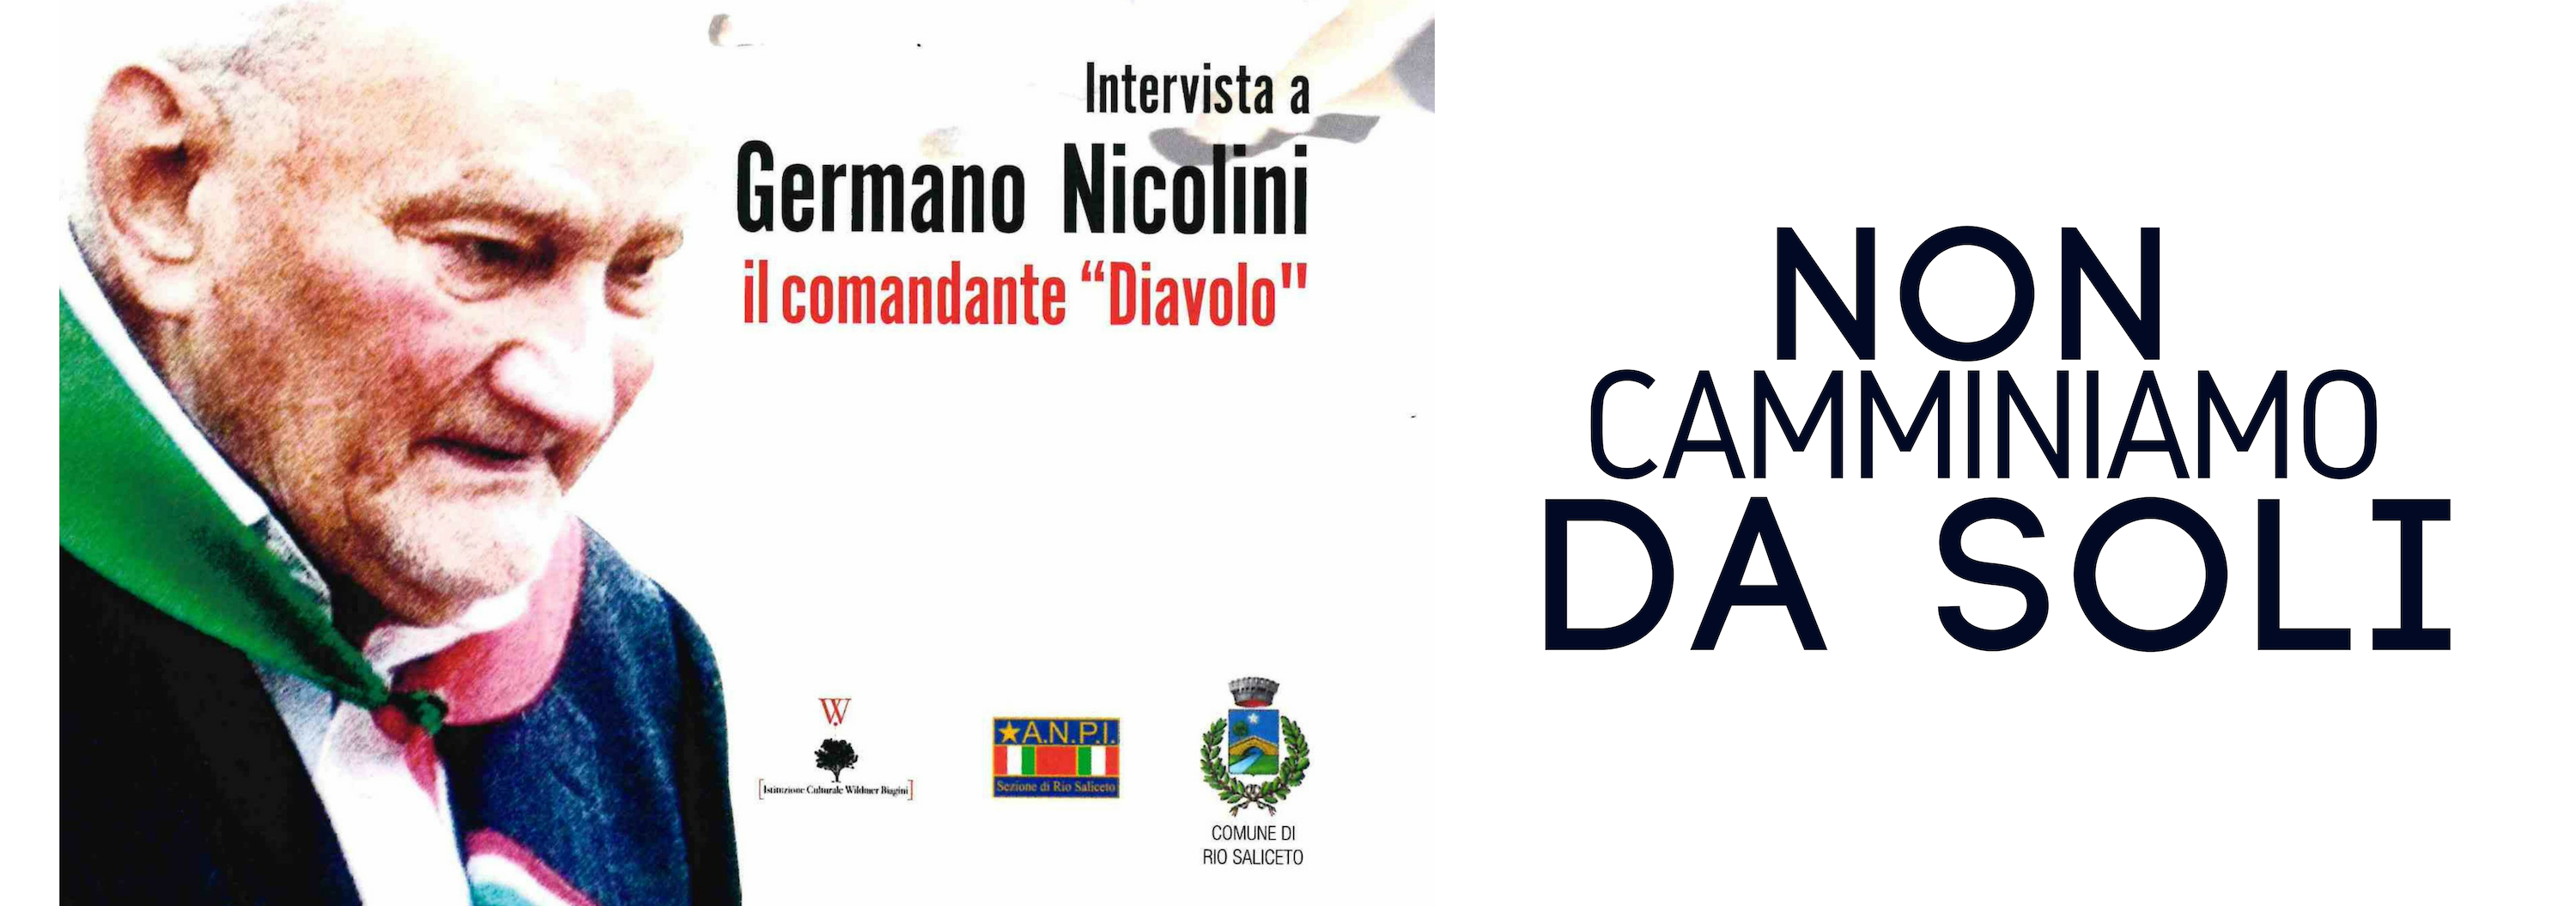 INTERVISTA VIDEO A GERMANO NICOLINI